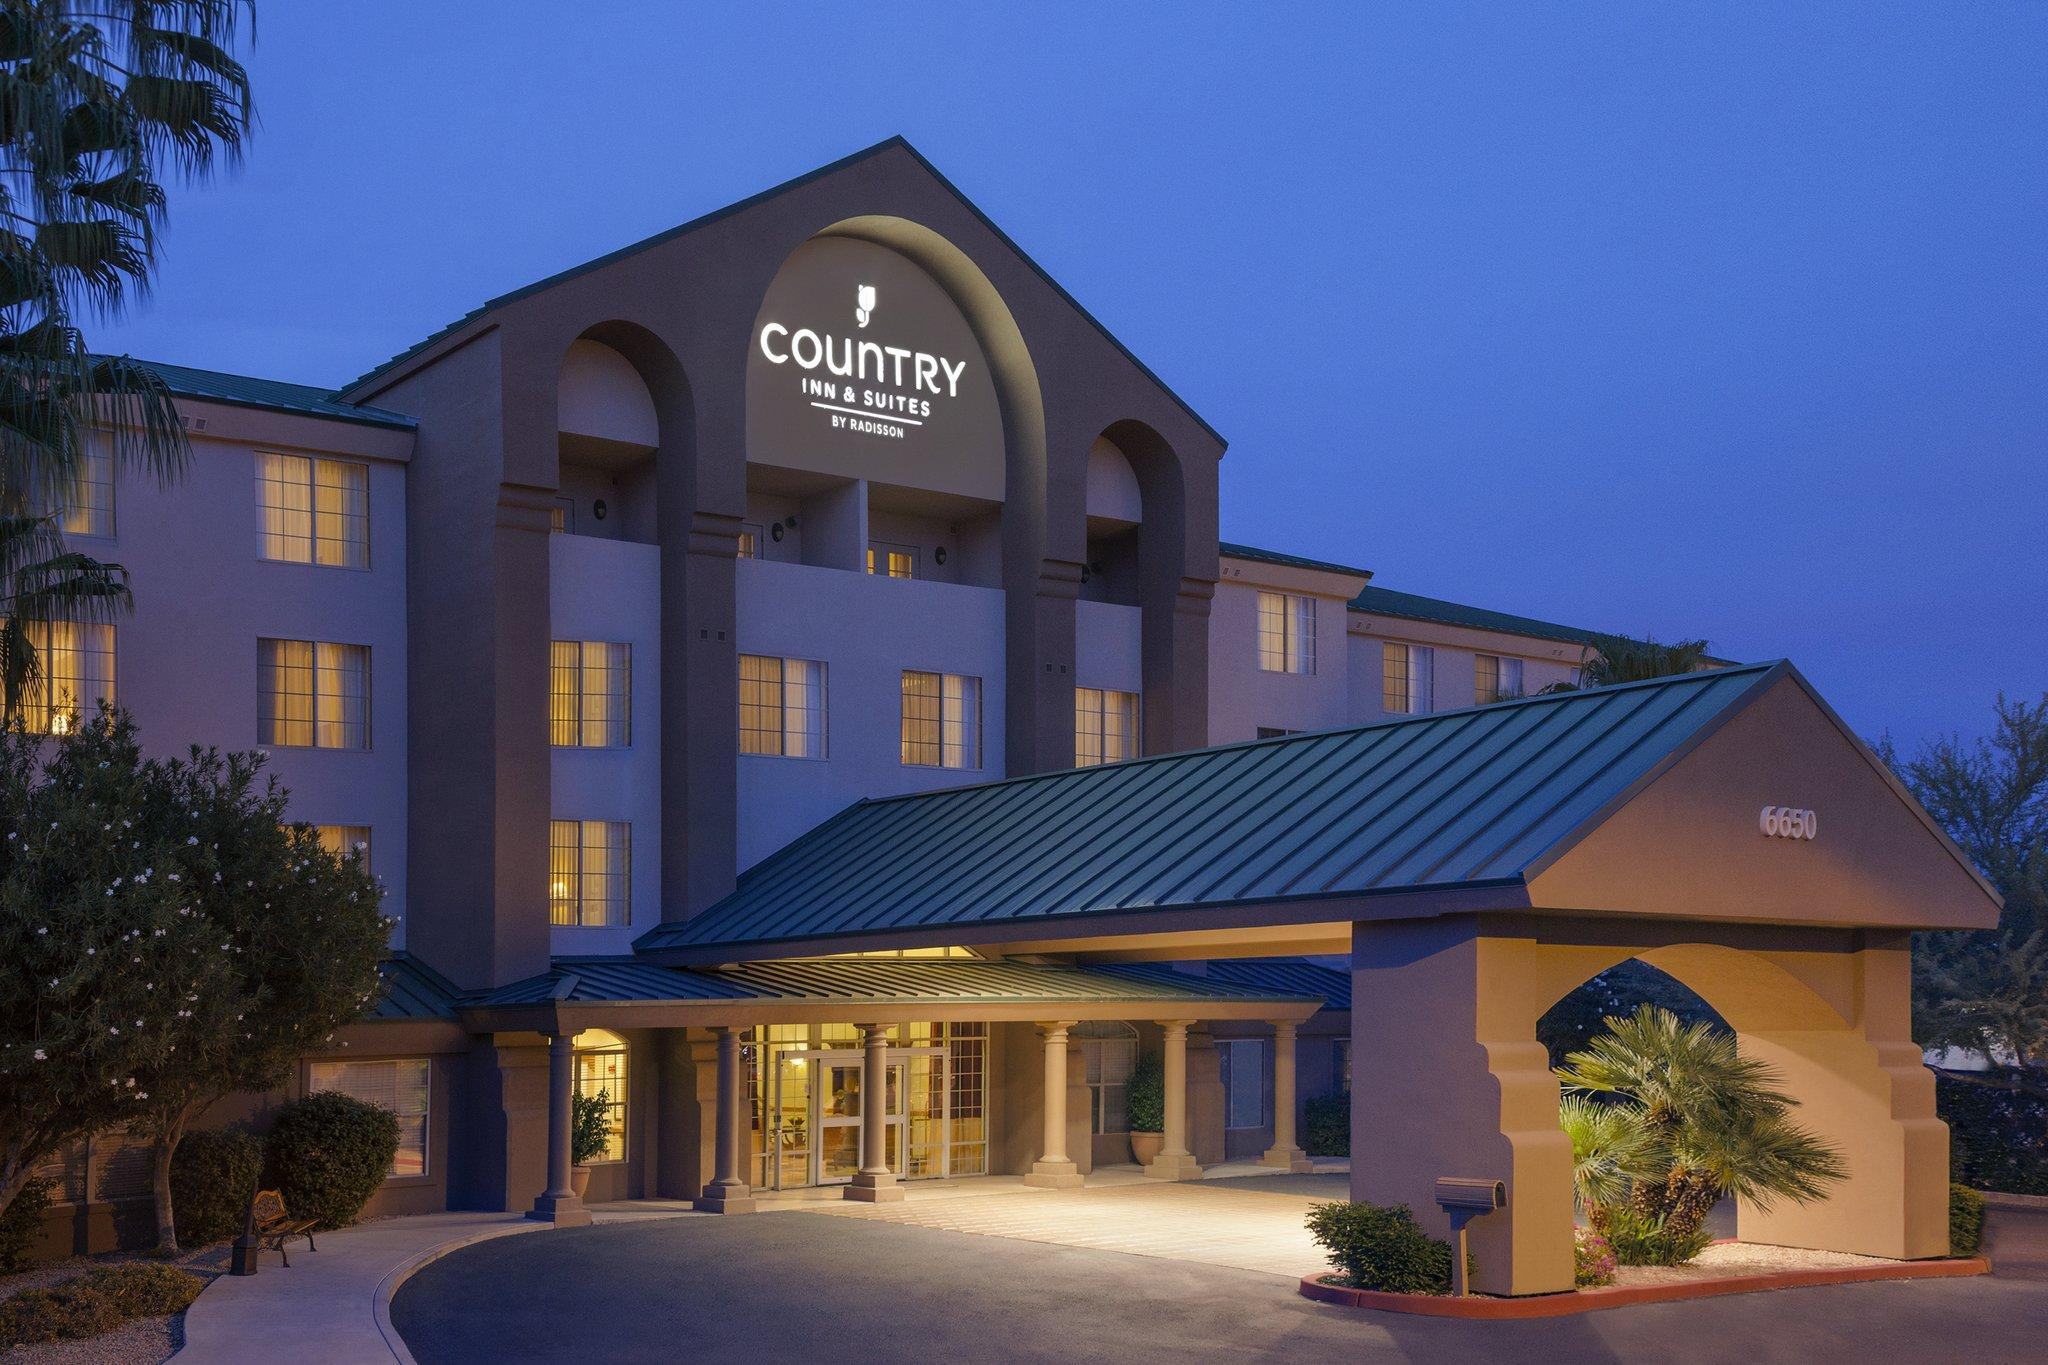 Country Inn And Suites By Radisson Mesa AZ